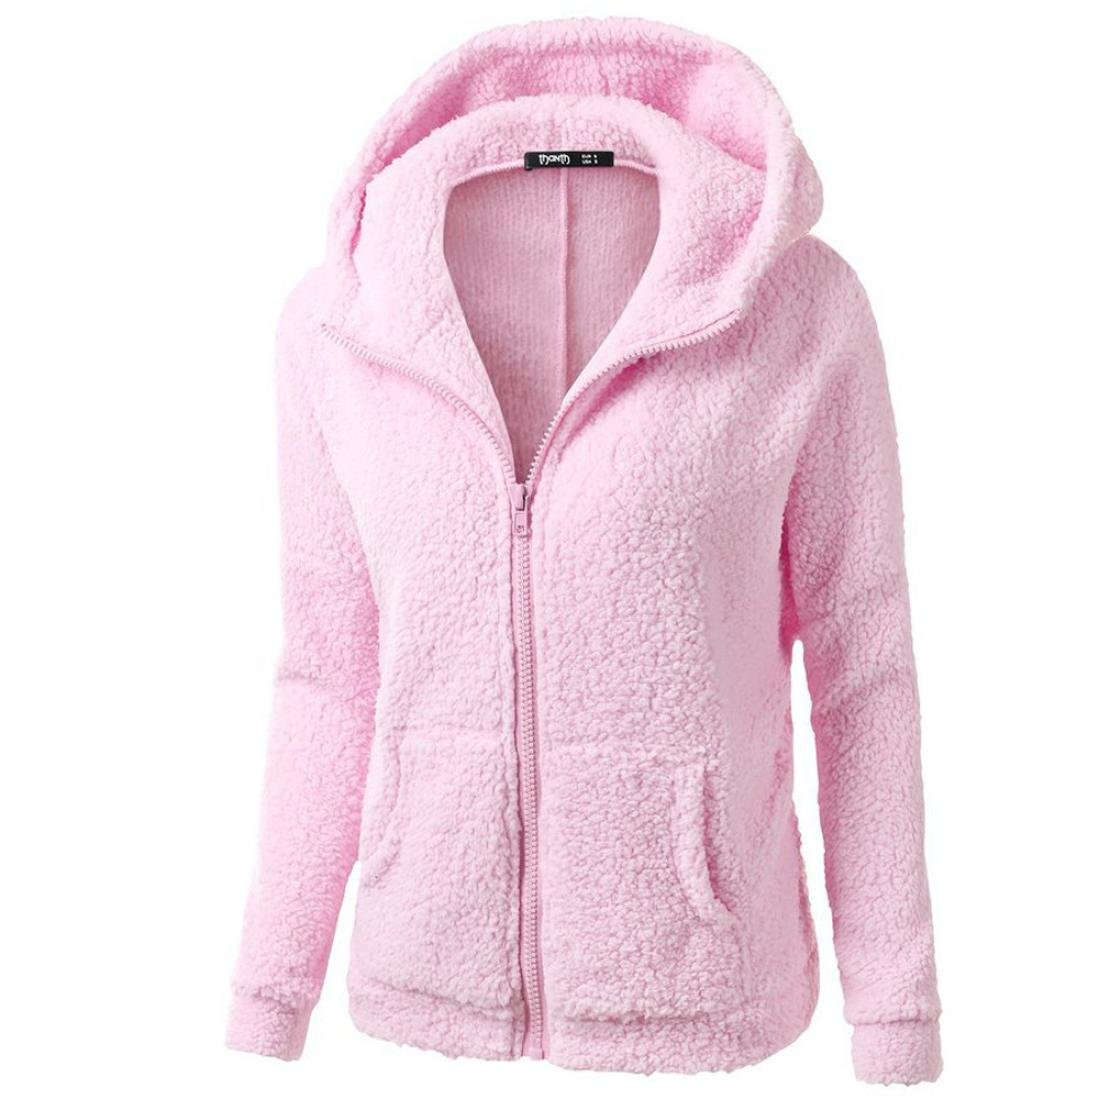 iQKA Women Plus Size Casual Hooded Sweatshirt Coat Full Zipper Hoodie Thick Outwear iQKA0726